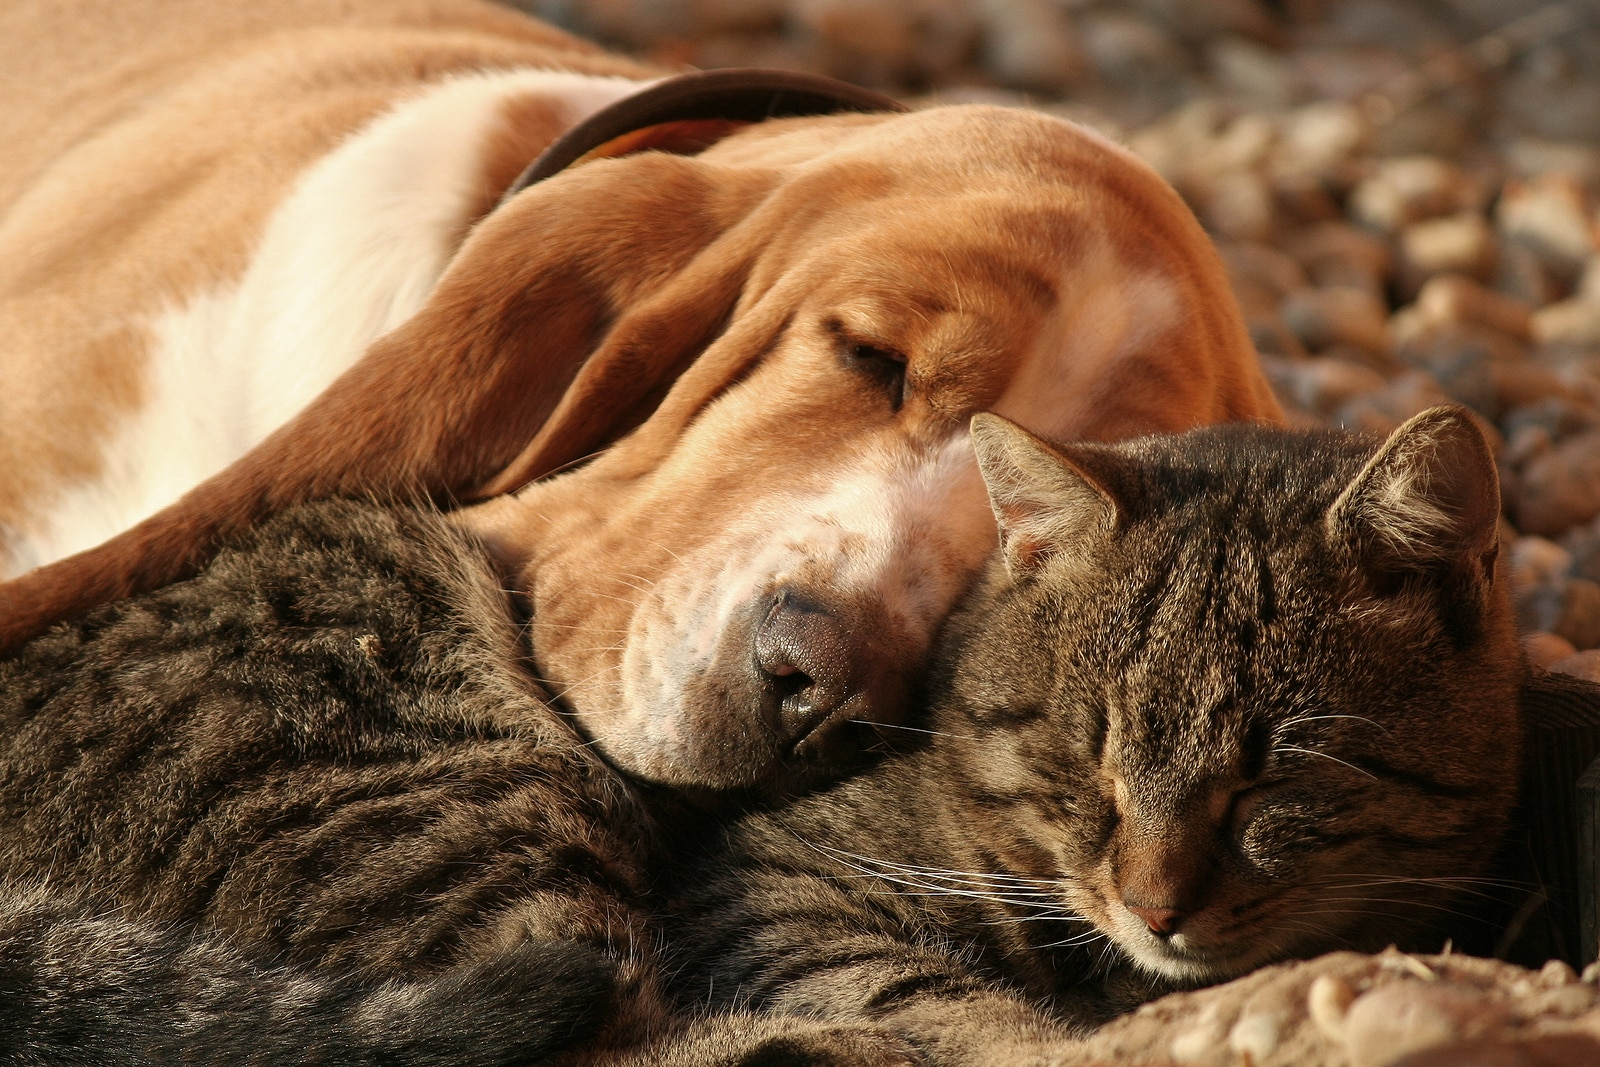 Tabby cat and basset hound snuggle together.